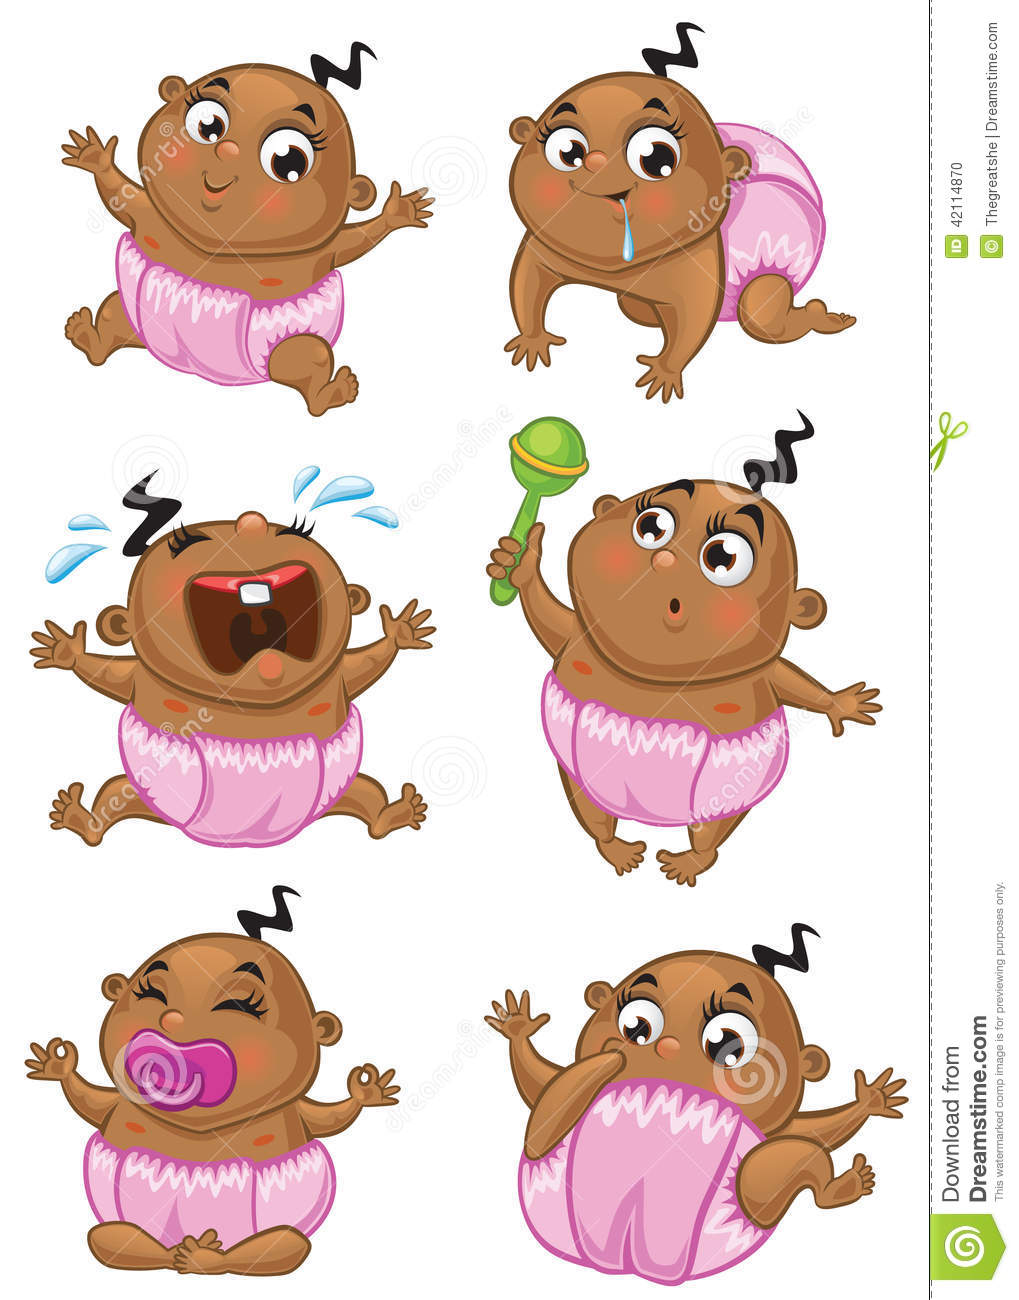 African american baby girl stock vector. Illustration of ...